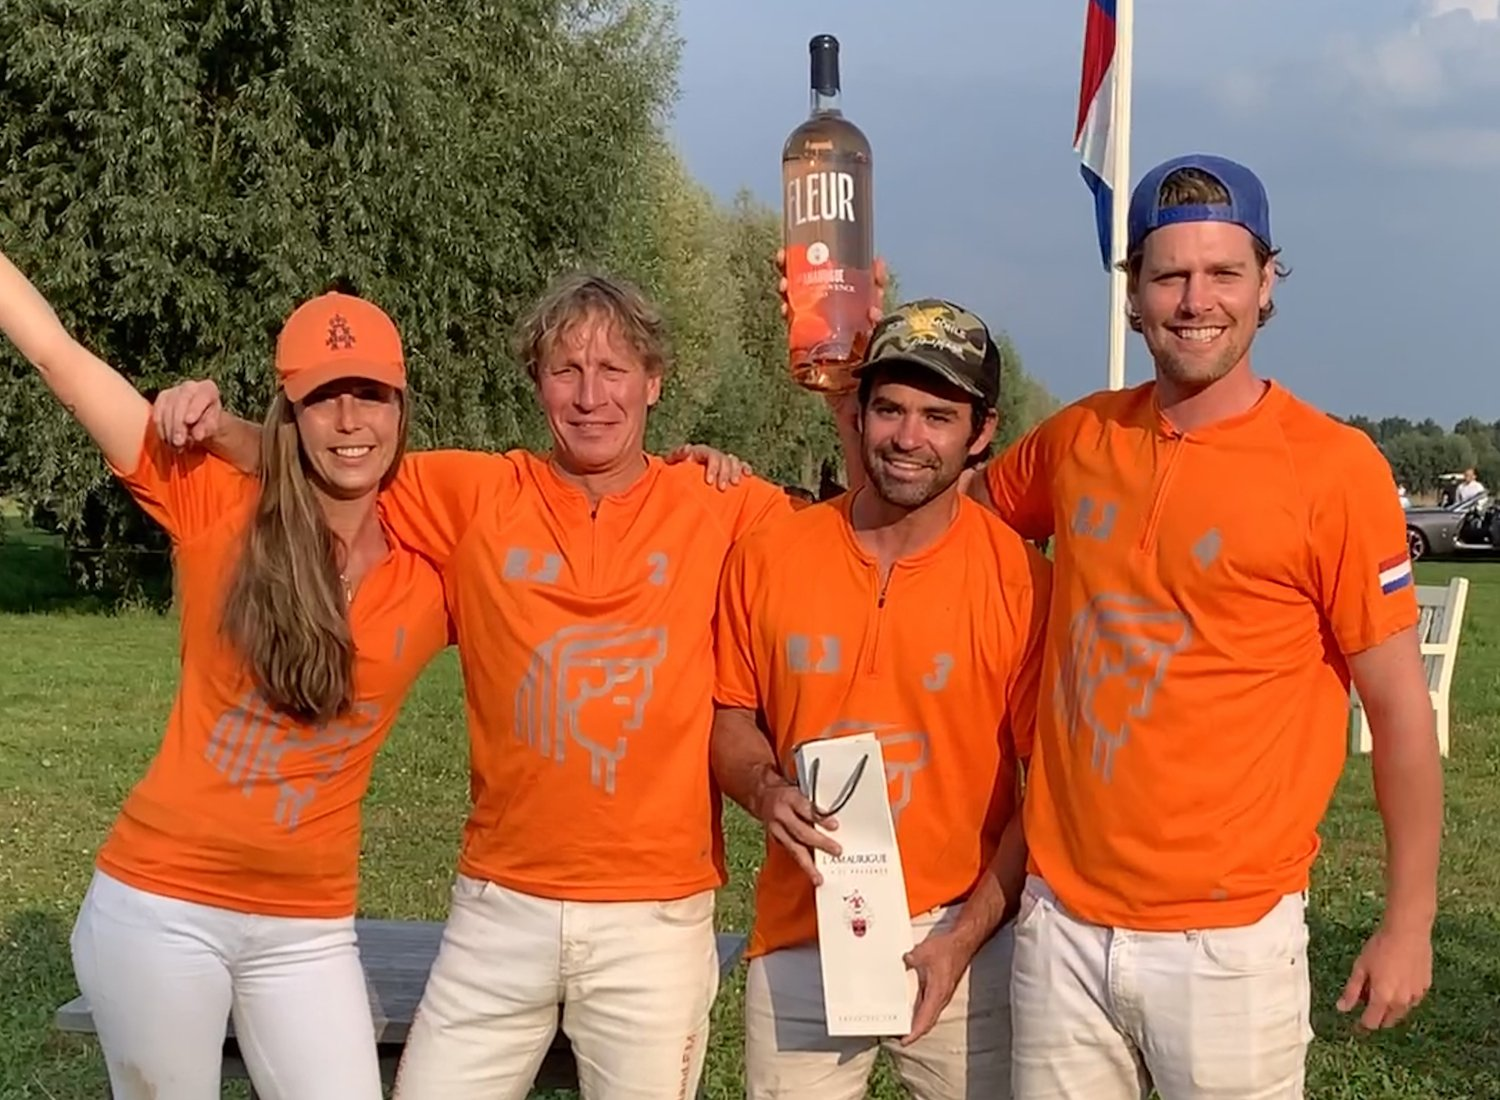 HERA with Larissa Esser, Jim Souren, Aki van Andel and Santiago Shanahan wins the GOLD CUP BROOKLYN POLO CUP 2021 !